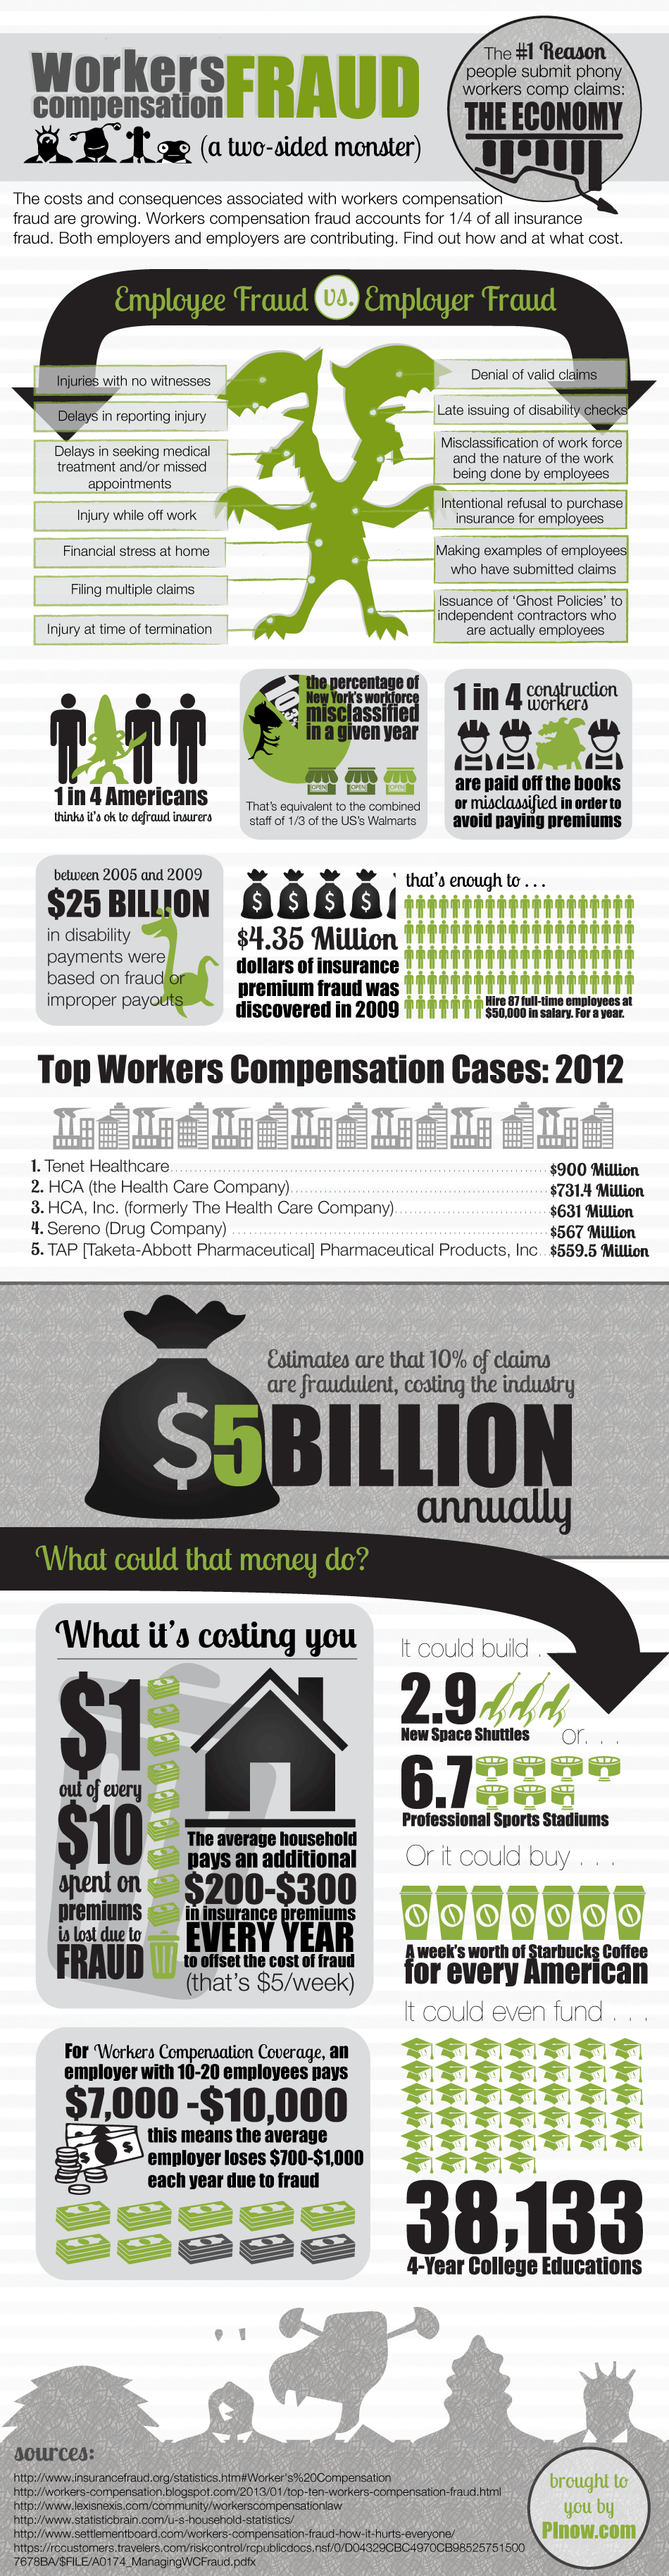 workers-compensation-fraud-infographic